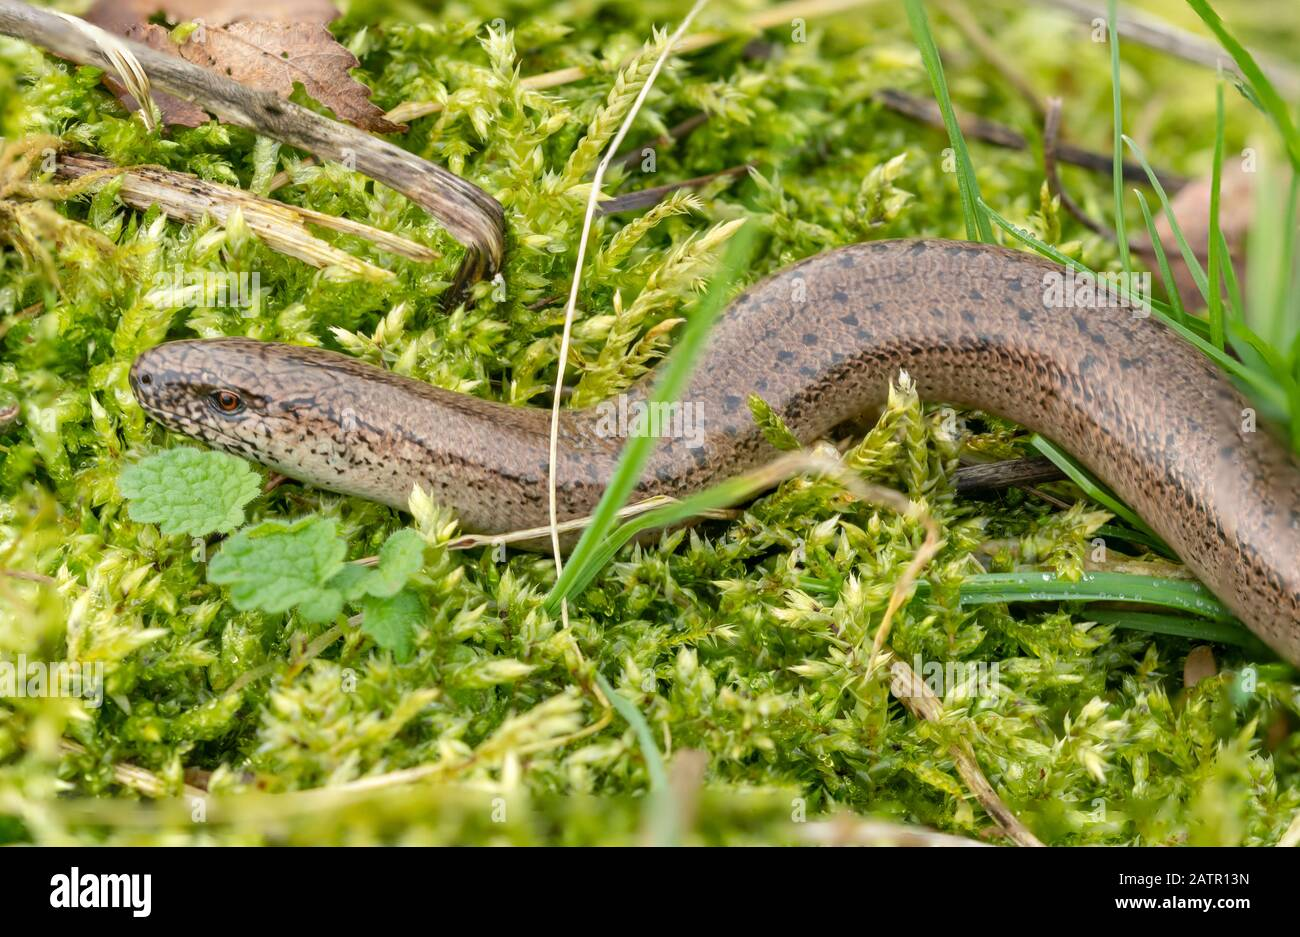 a-male-slow-worm-anguis-fragilis-basking-on-moss-in-early-february-a-very-early-emergence-from-hibernation-due-to-a-mild-winter-surrey-uk-2ATR13N.jpg